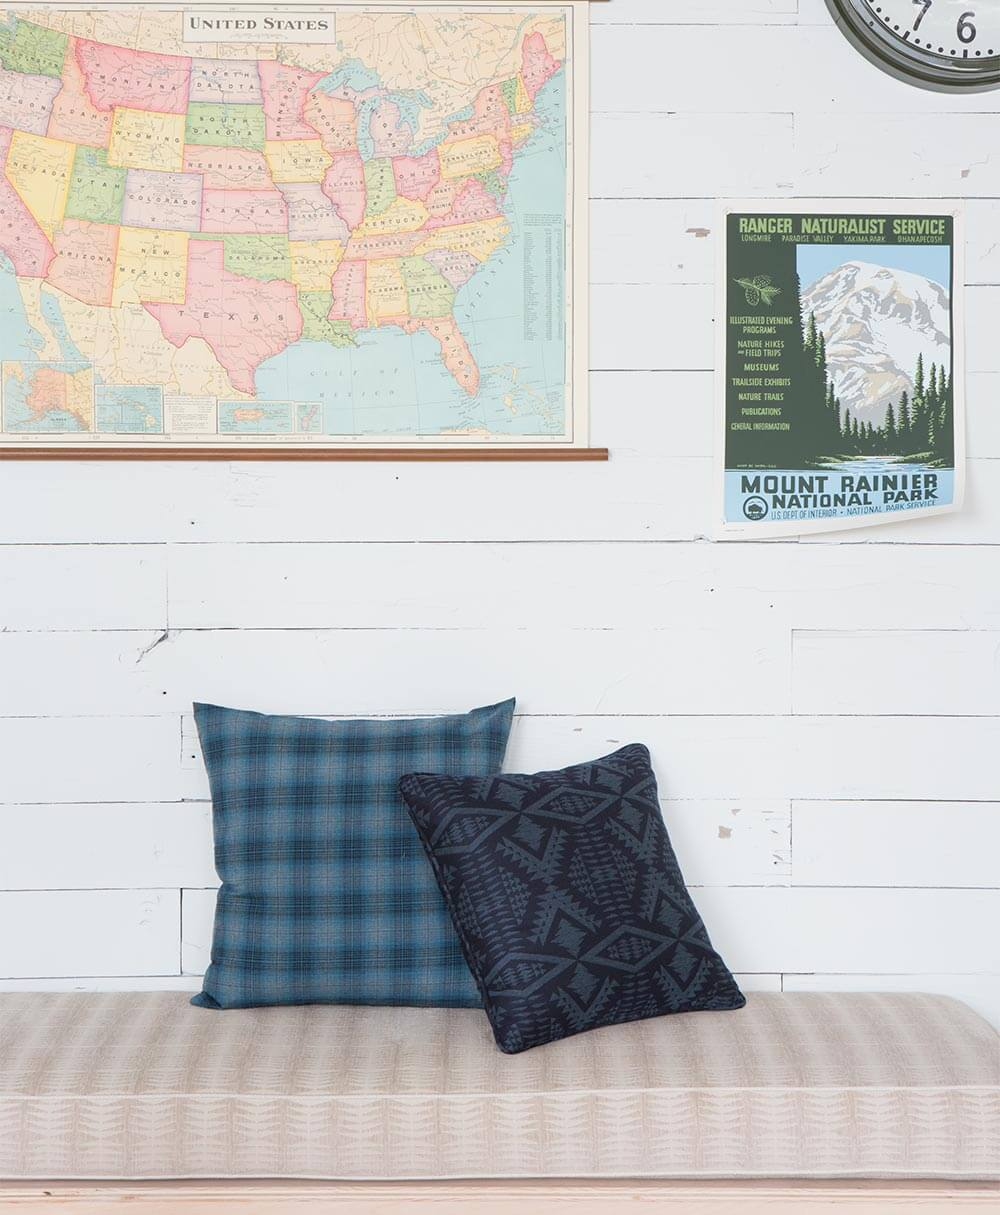 Blue patterned pillows sit on a beige patterned cushion, all fabrics from the Pendleton by Sunbrella collection.